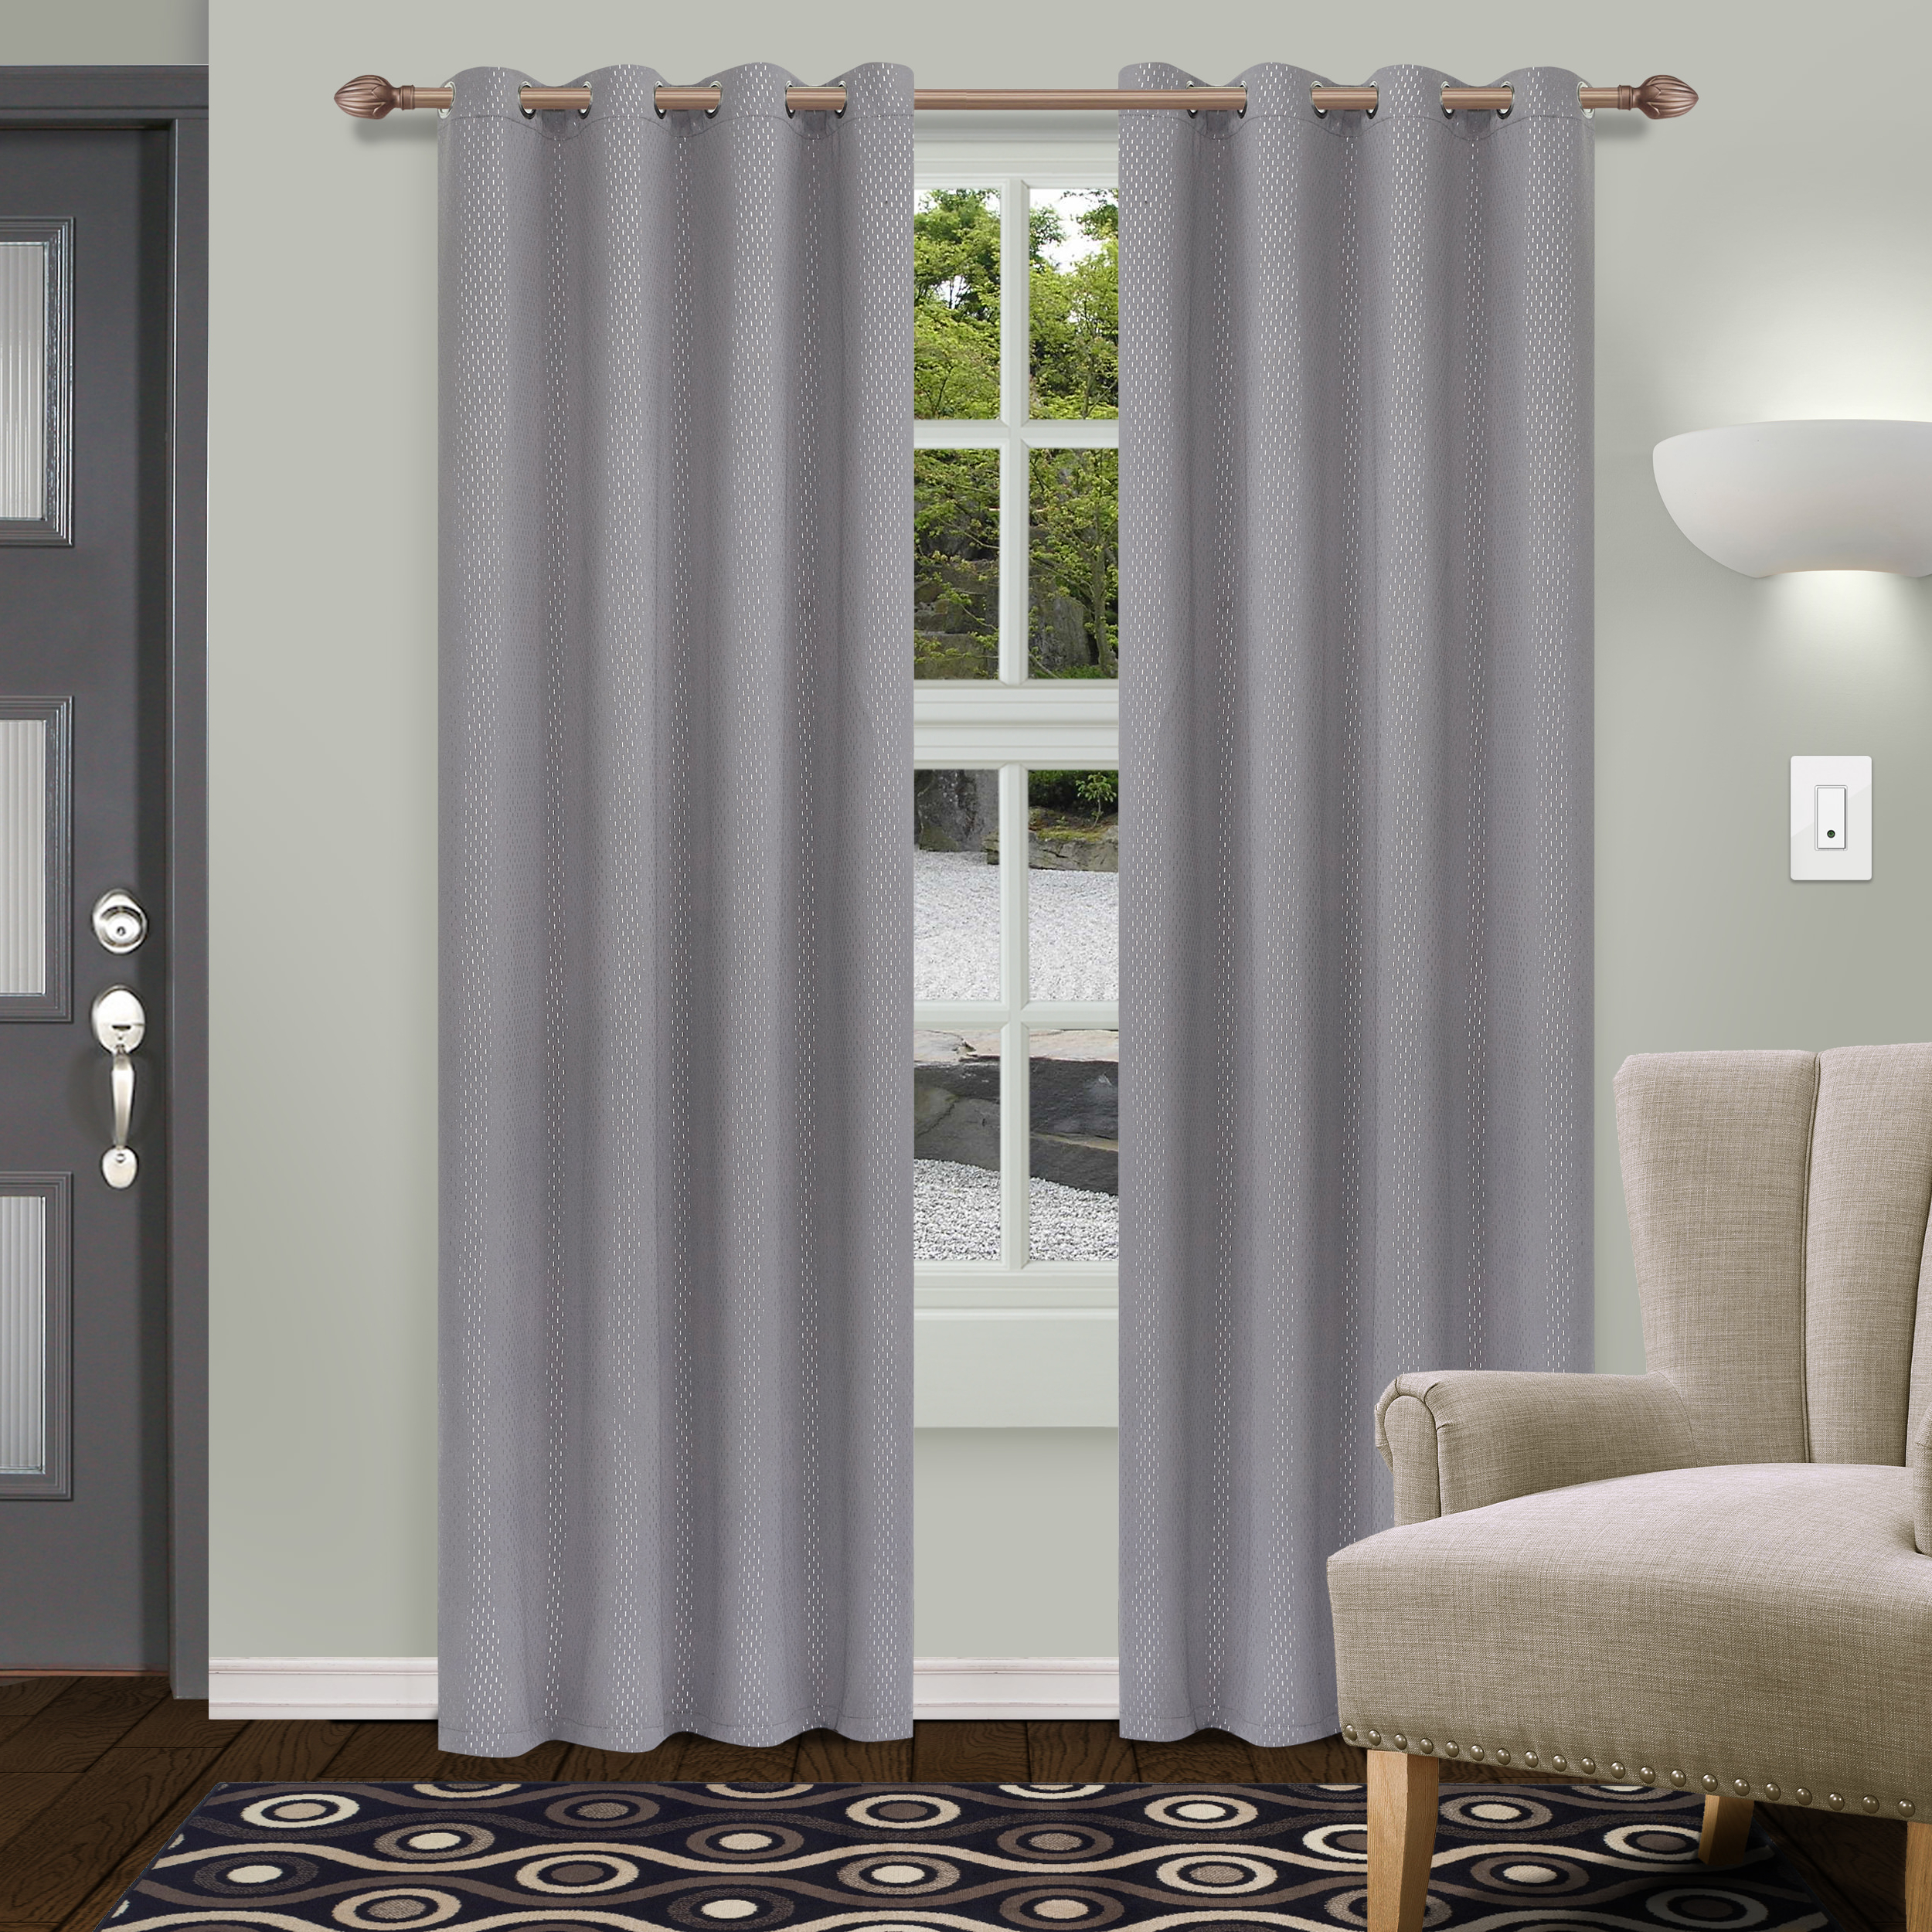 2021 Superior Solid Insulated Thermal Blackout Grommet Curtain Panel Pairs With Regard To Superior Shimmer Textured Blackout Curtain Set Of 2, Insulated Panel With  Grommet Top – Walmart (View 3 of 20)